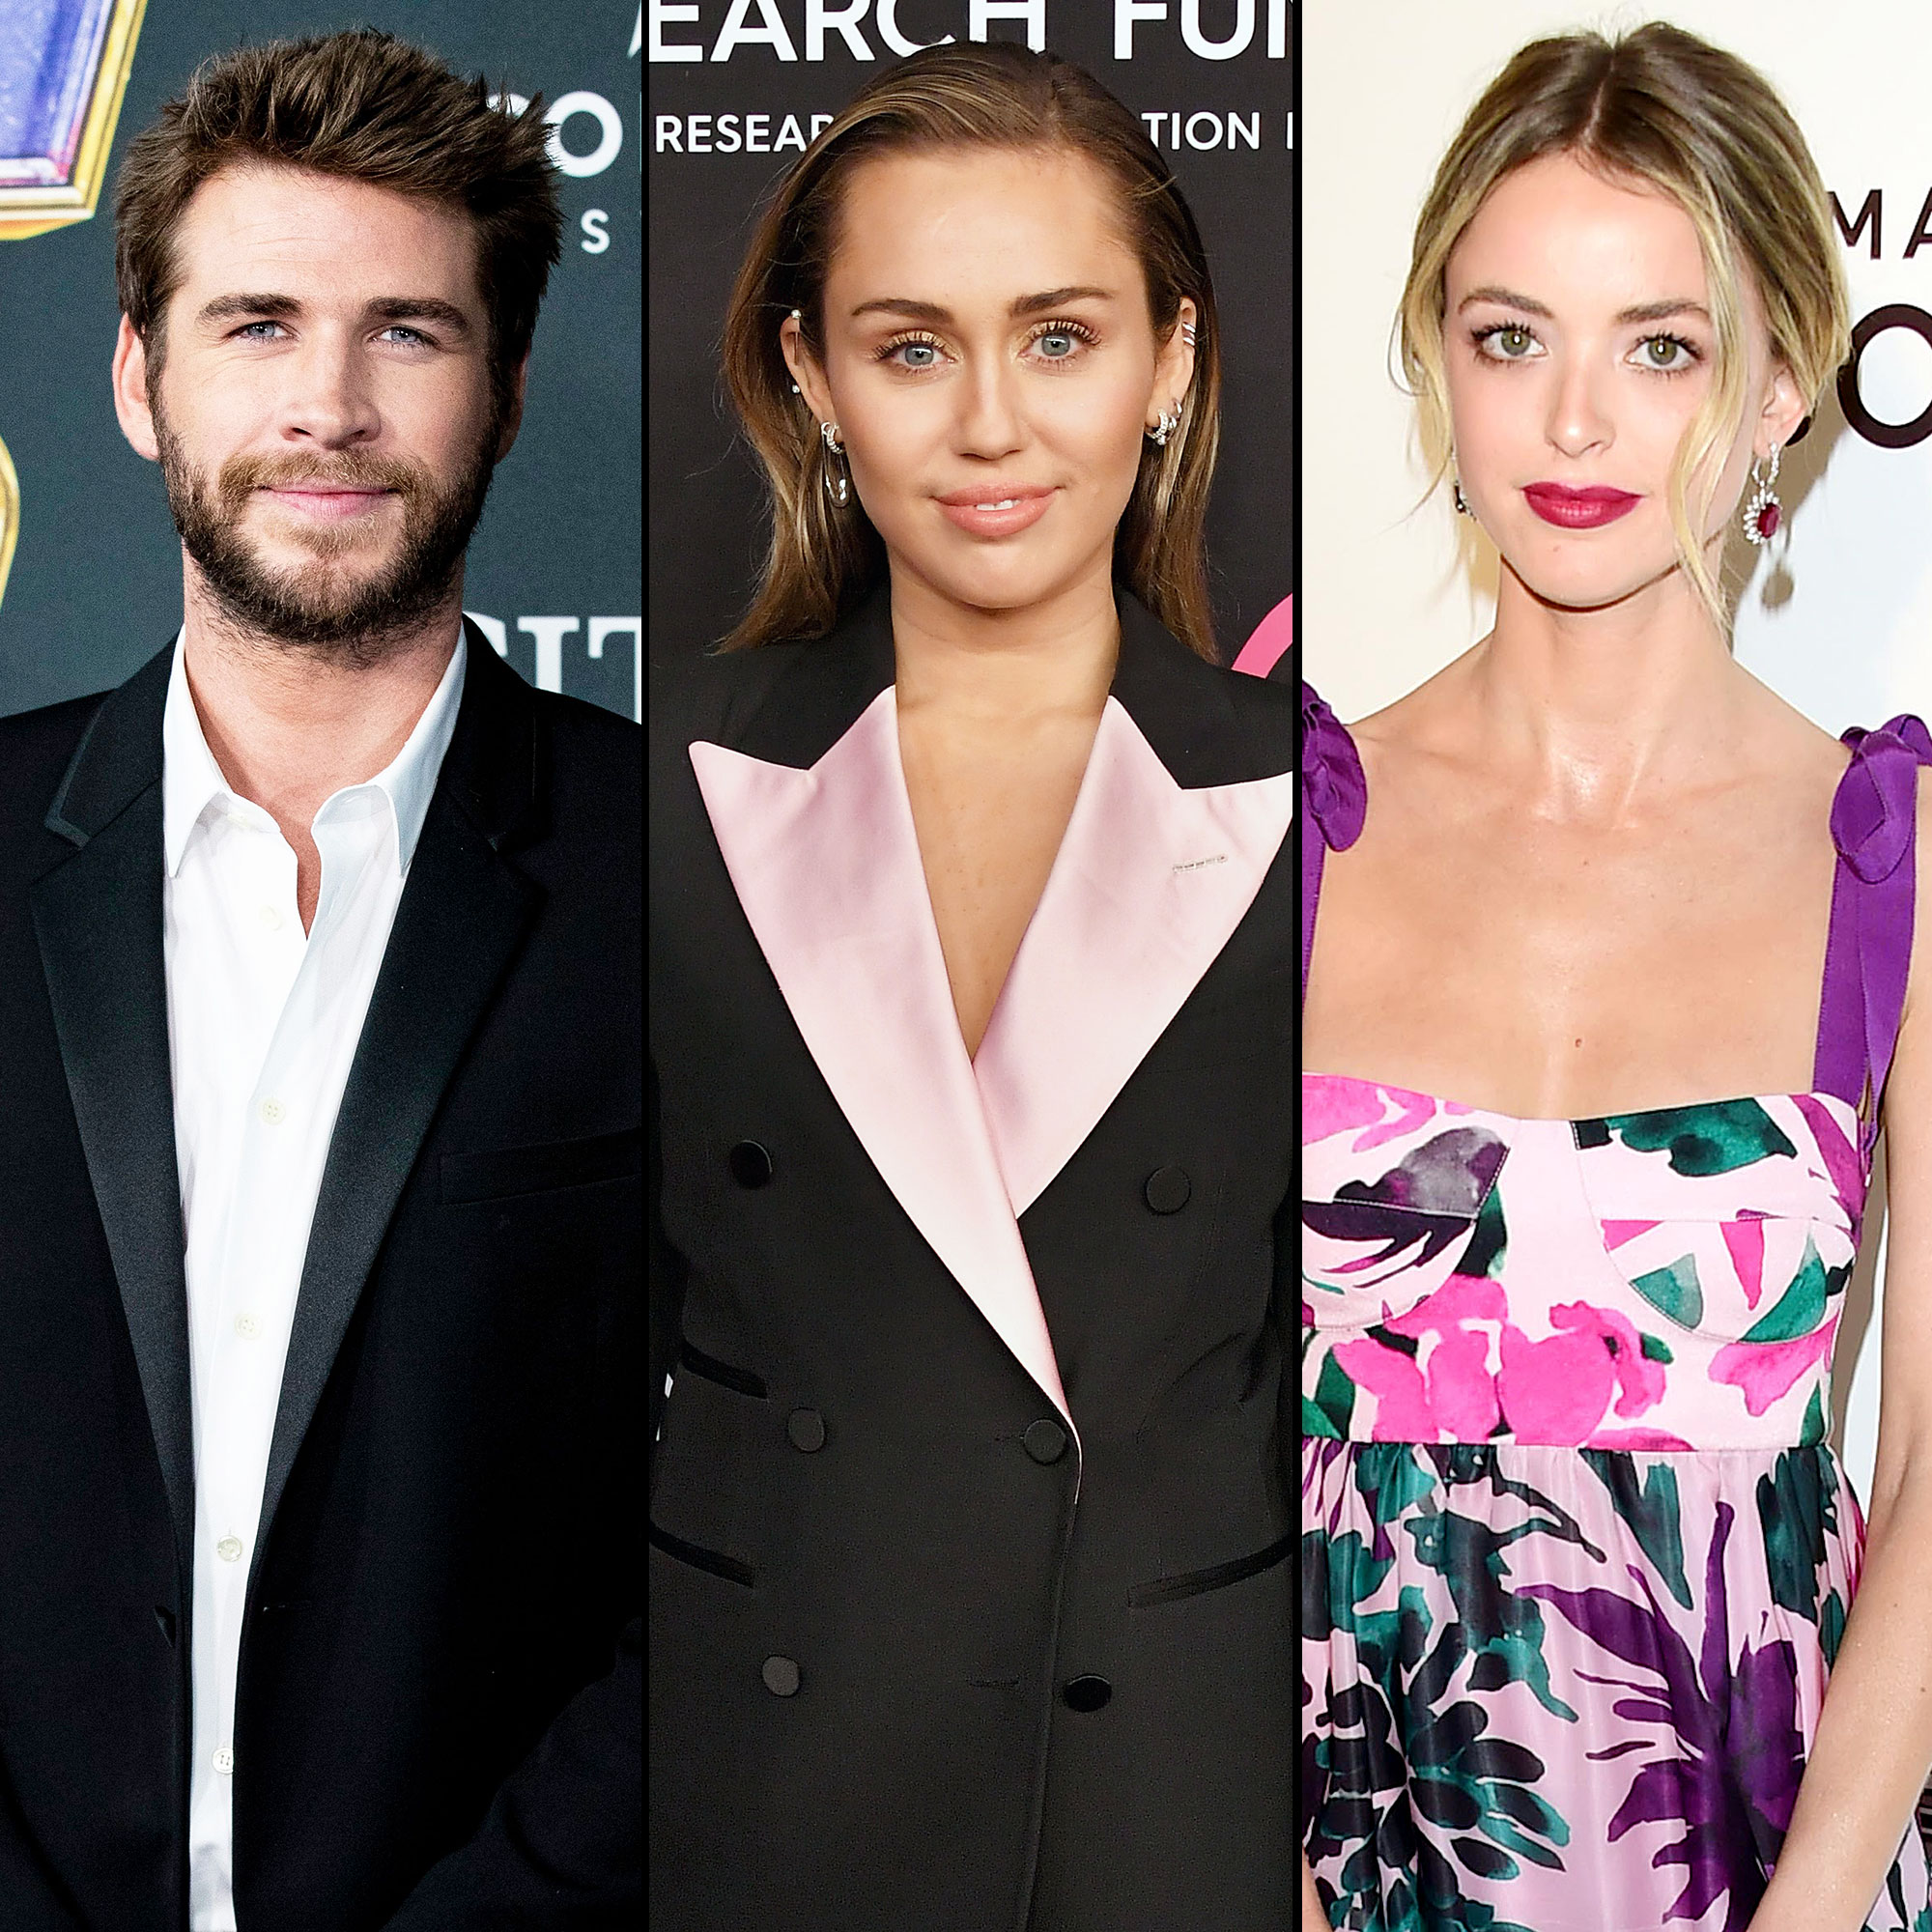 Miley Cyrus Jokes About Meeting New Potential Partners After Splits From Liam Hemsworth and Kaitlynn Carter